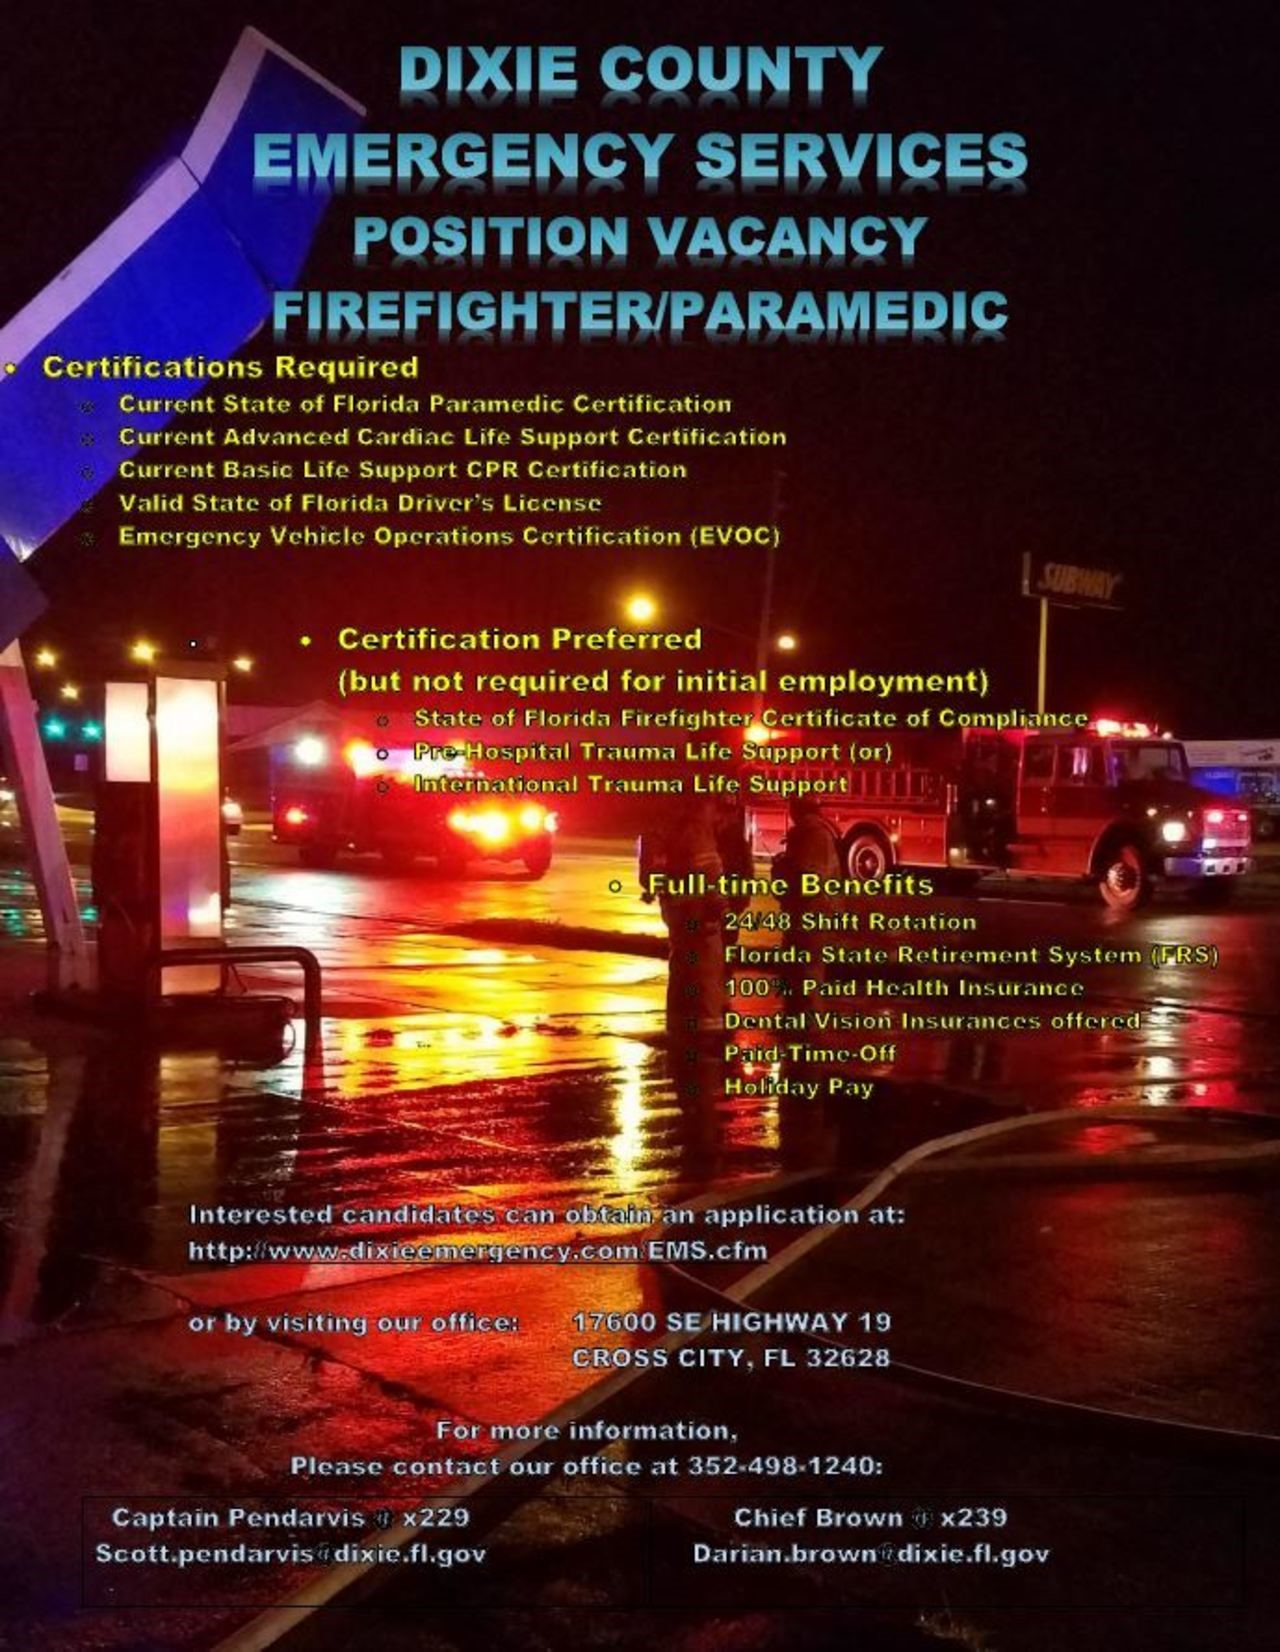 Dixie County Emergency Services Hiring FF/Paramedic